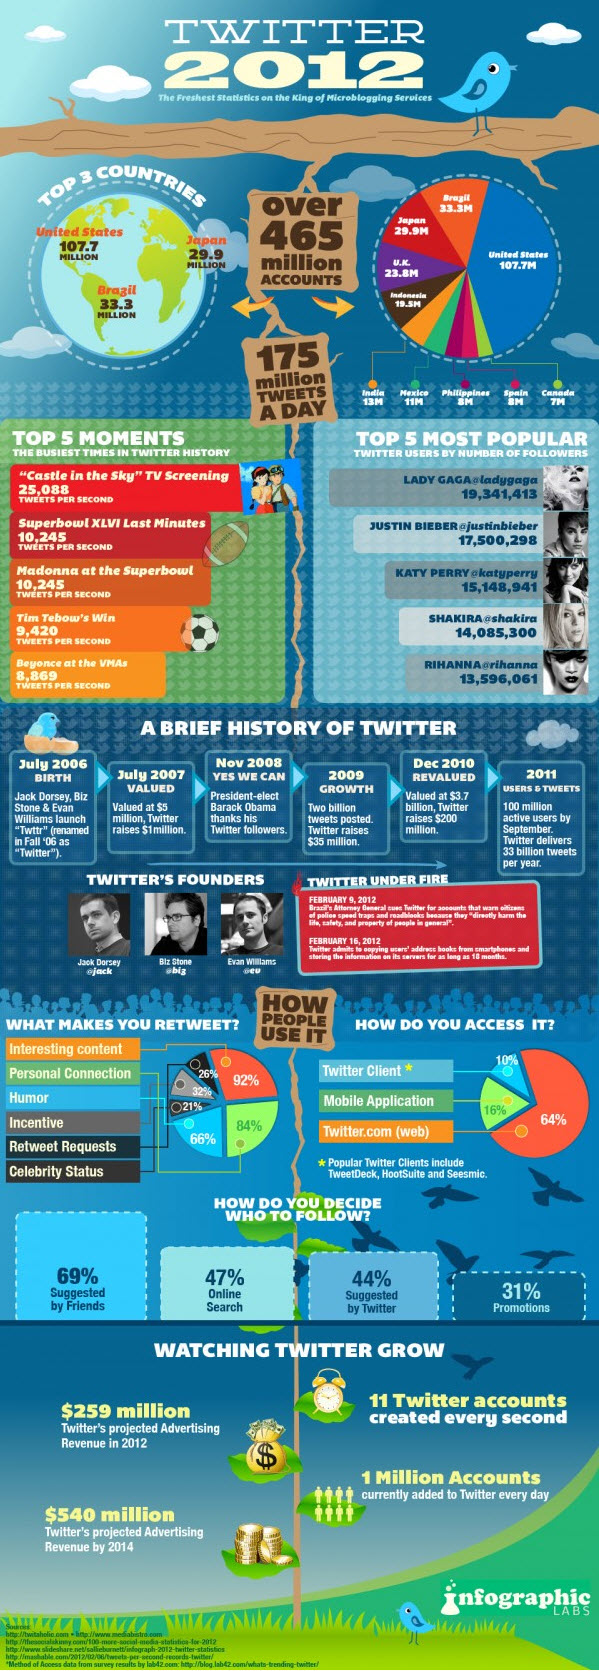 Twitter Facts Figures and Statistics 2012 Infographic